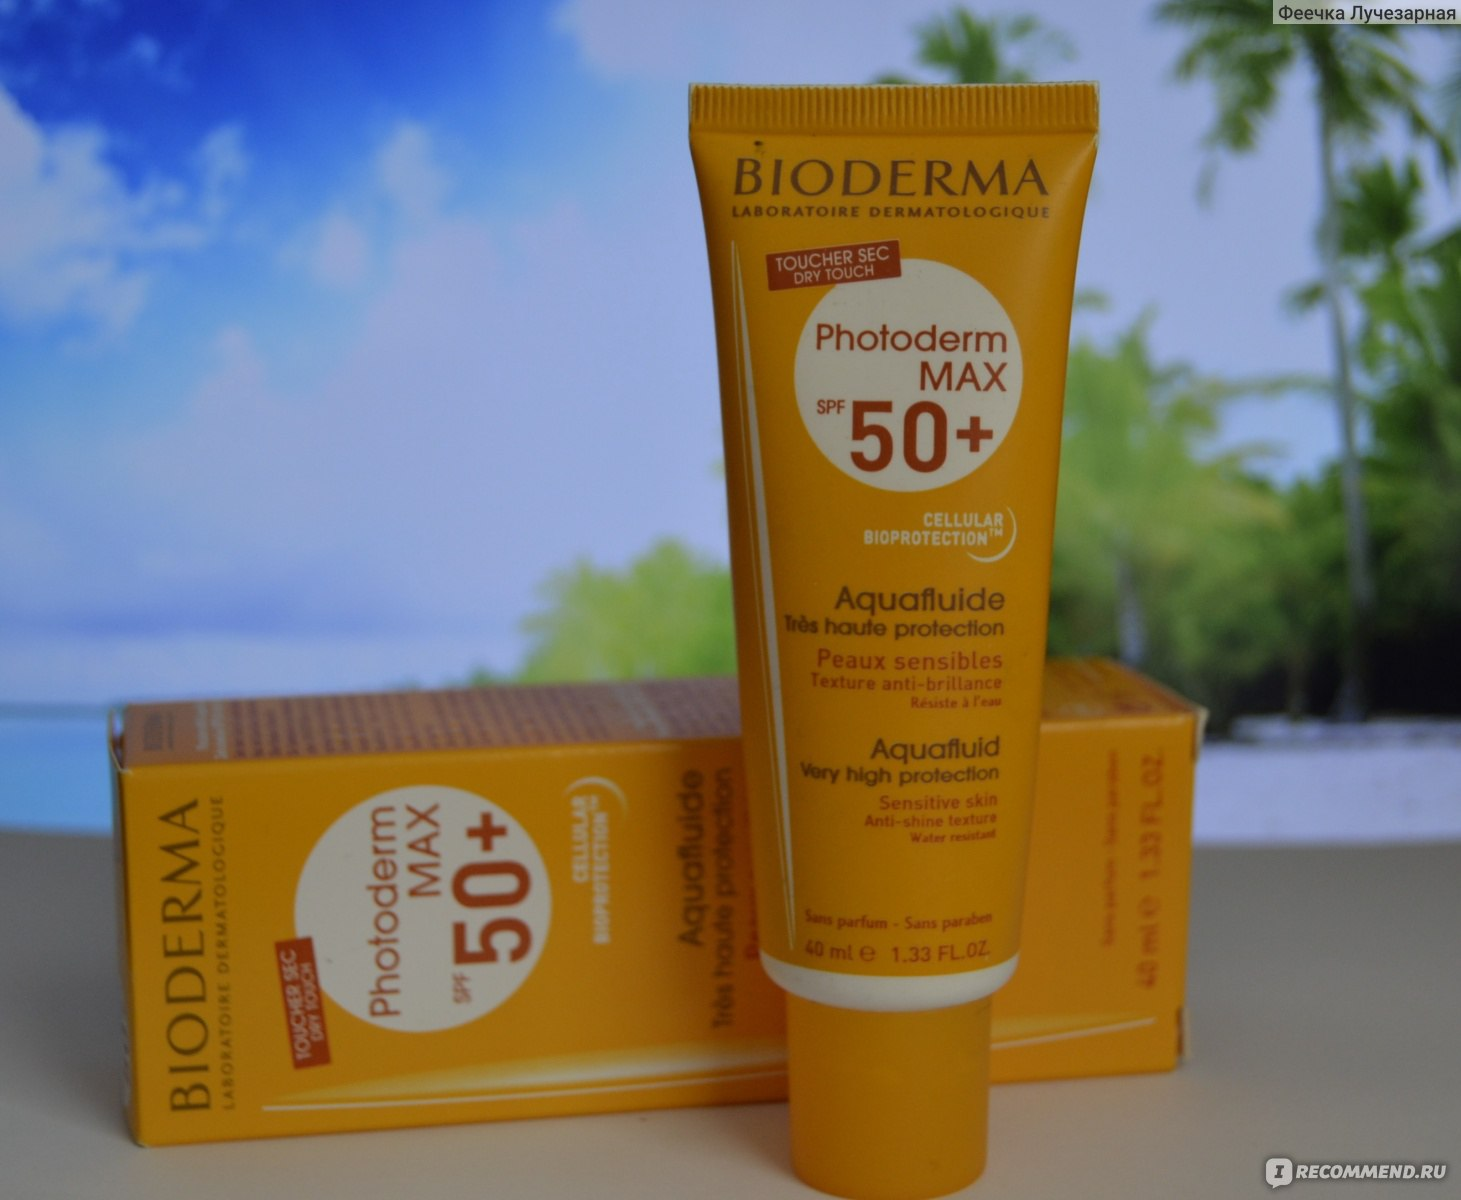 Bioderma photoderm max spf 100 tinted sun cream 1000 Amazing